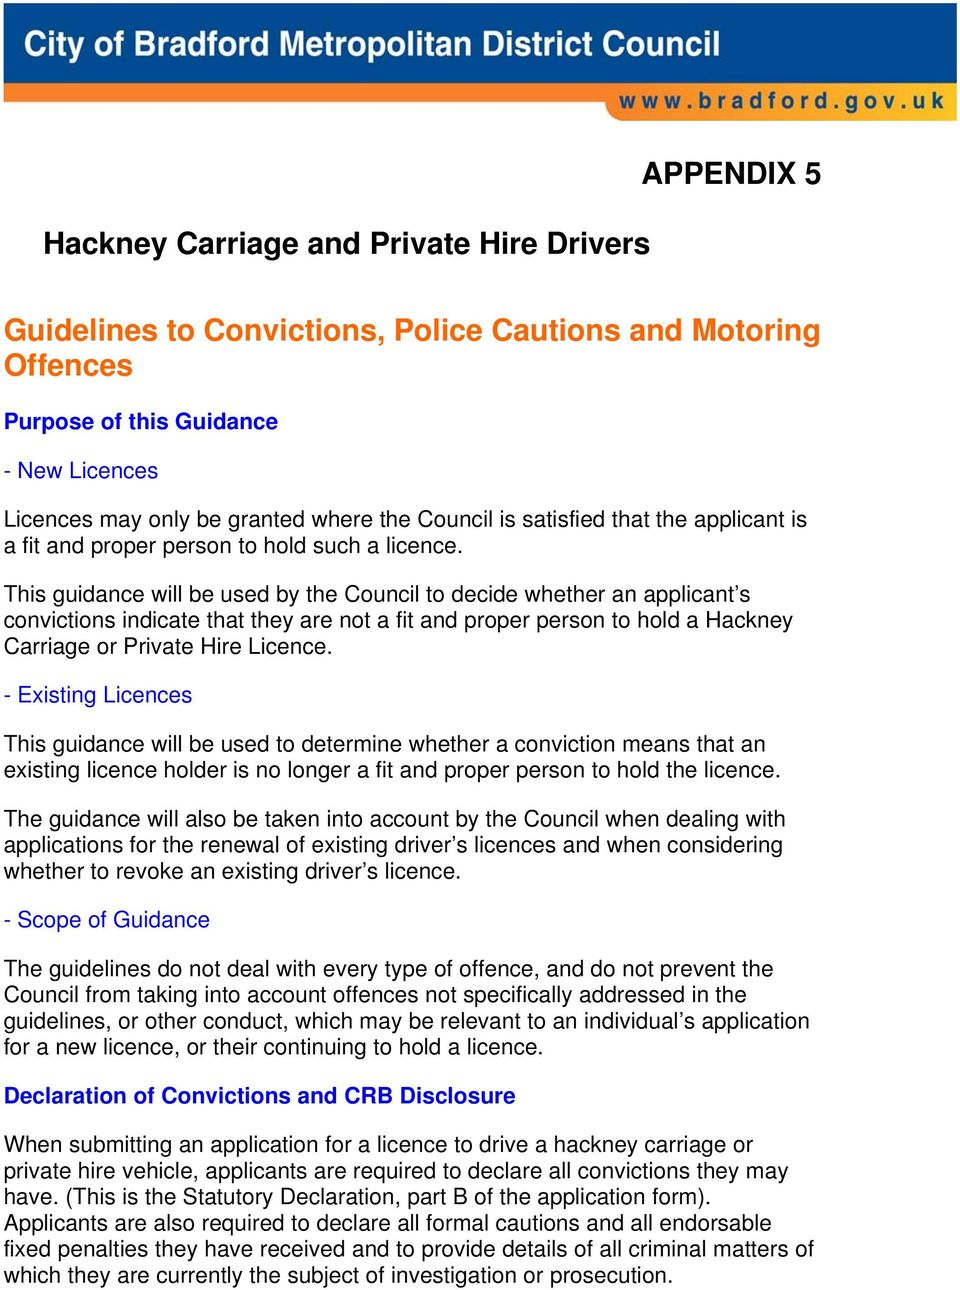 This guidance will be used by the Council to decide whether an applicant s convictions indicate that they are not a fit and proper person to hold a Hackney Carriage or Private Hire Licence.